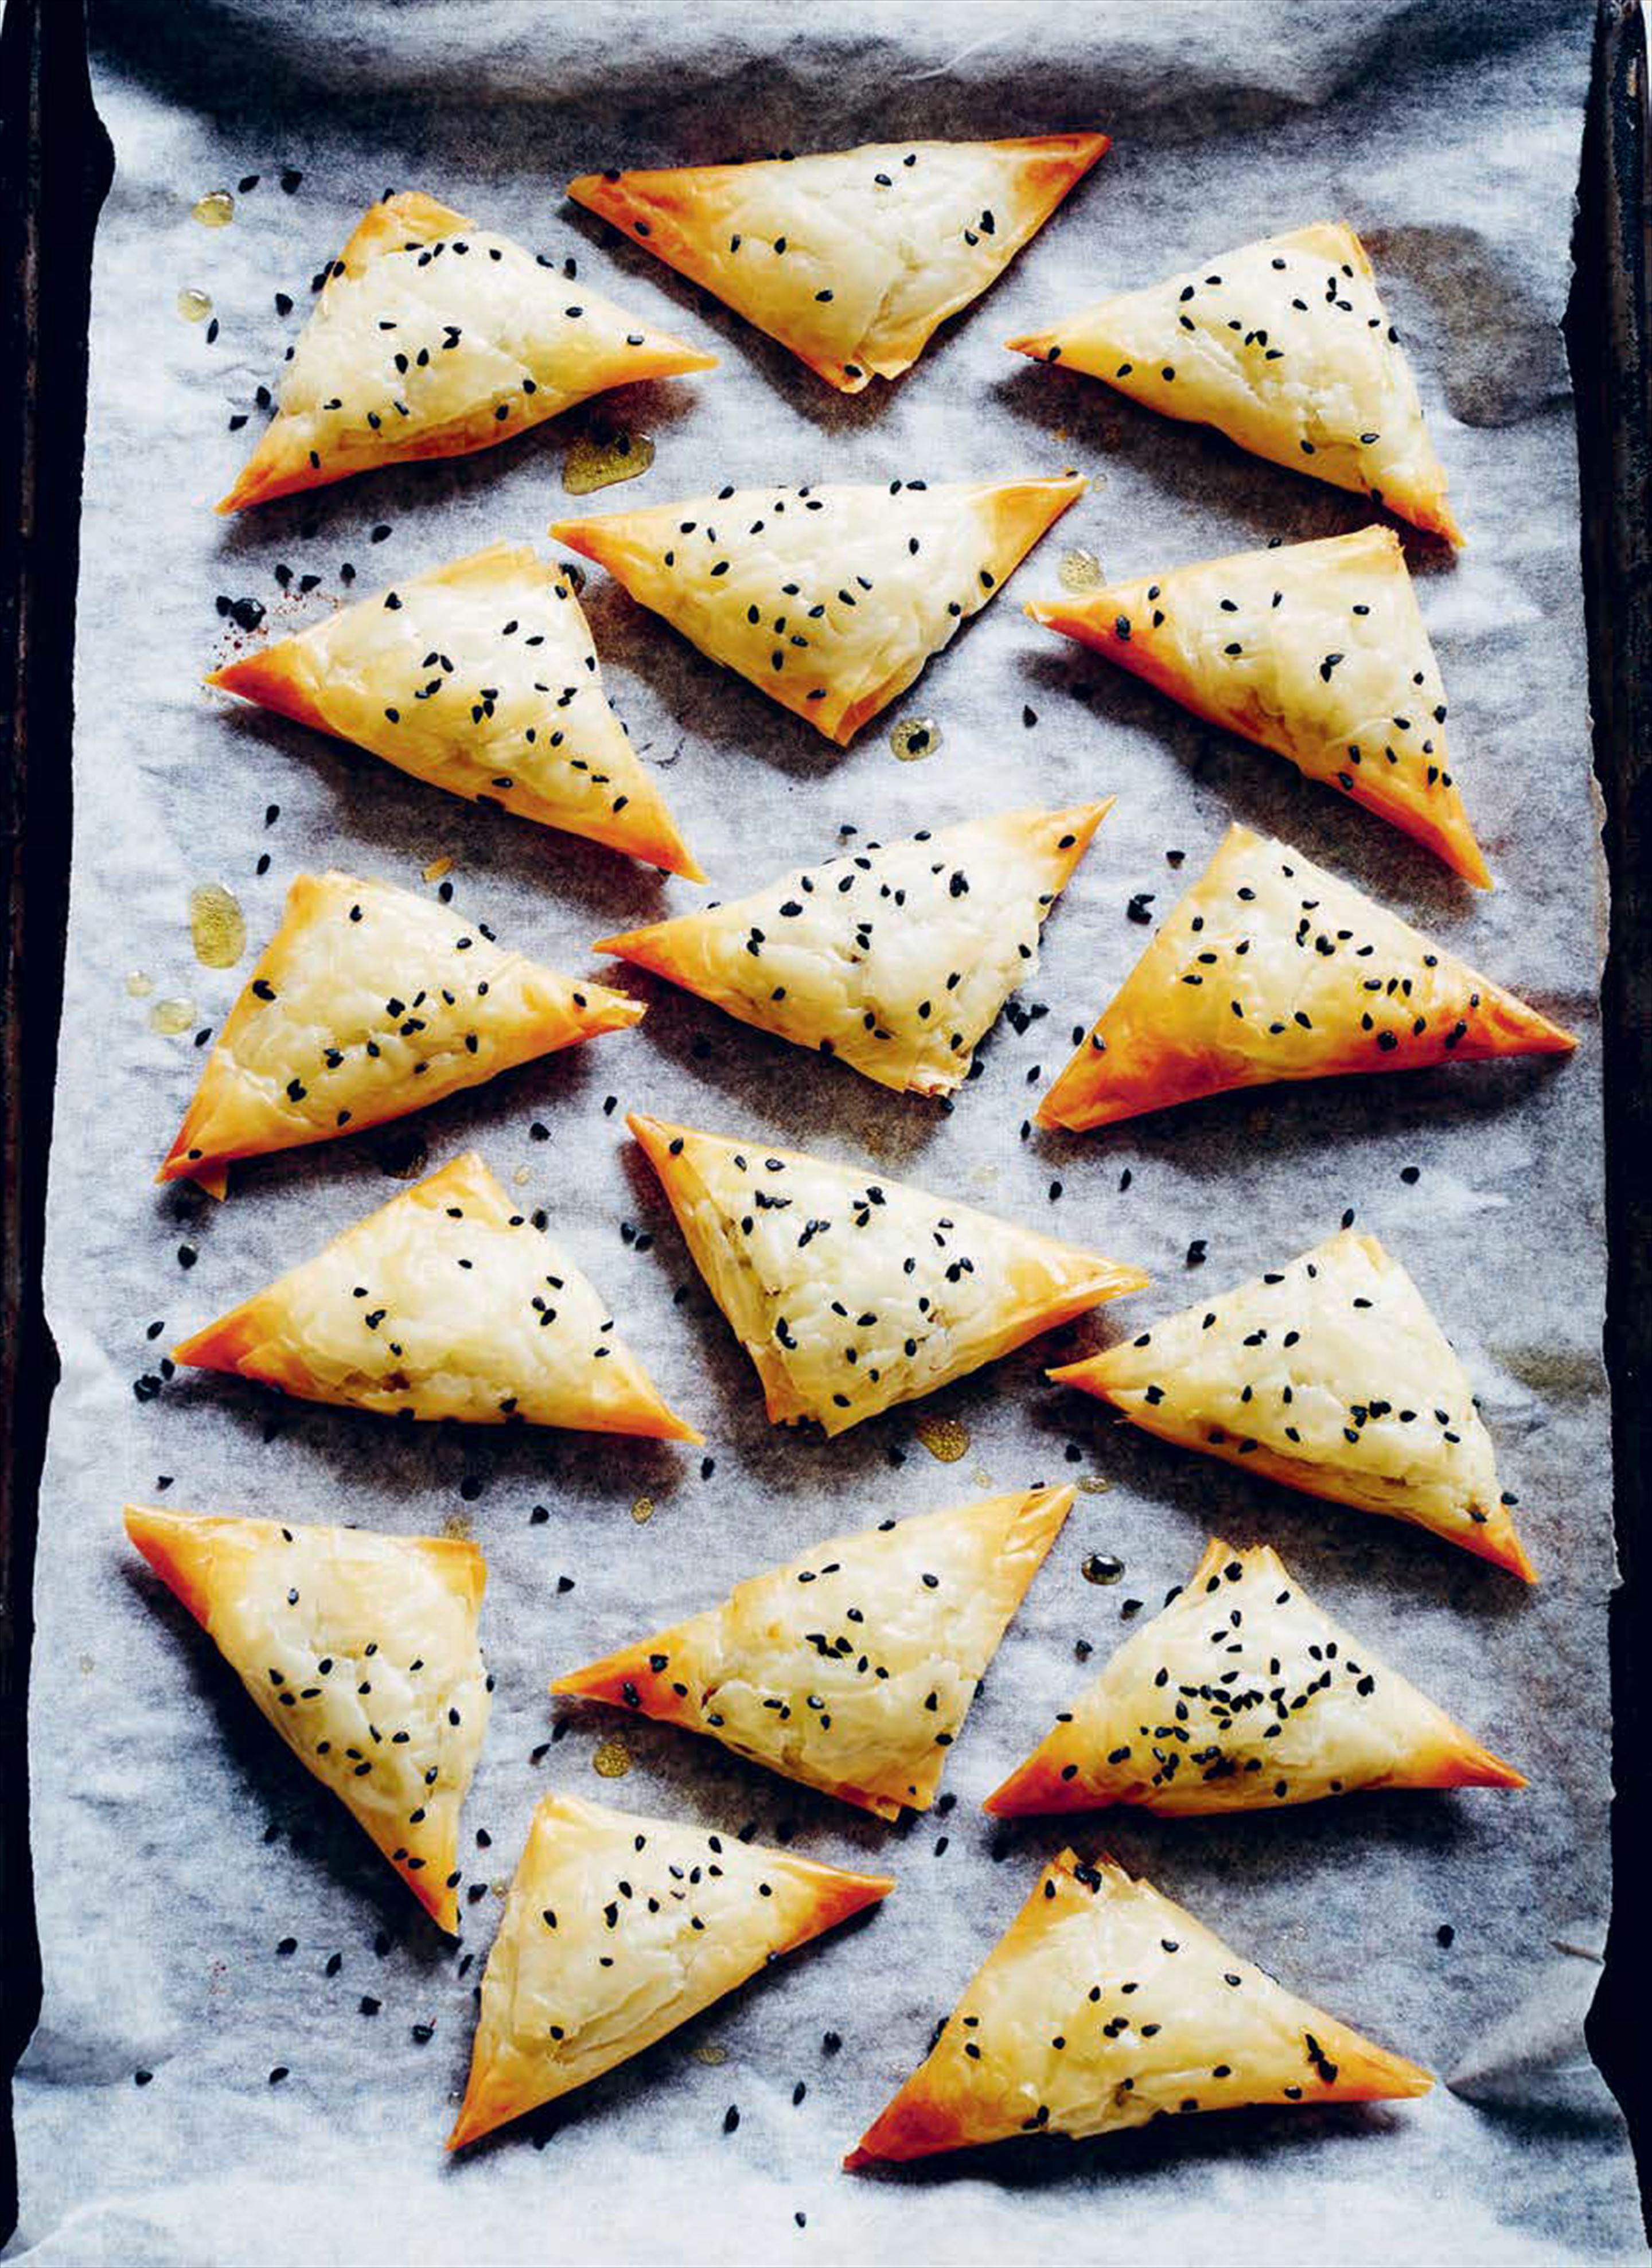 Sephardic cheese and parsley pastries